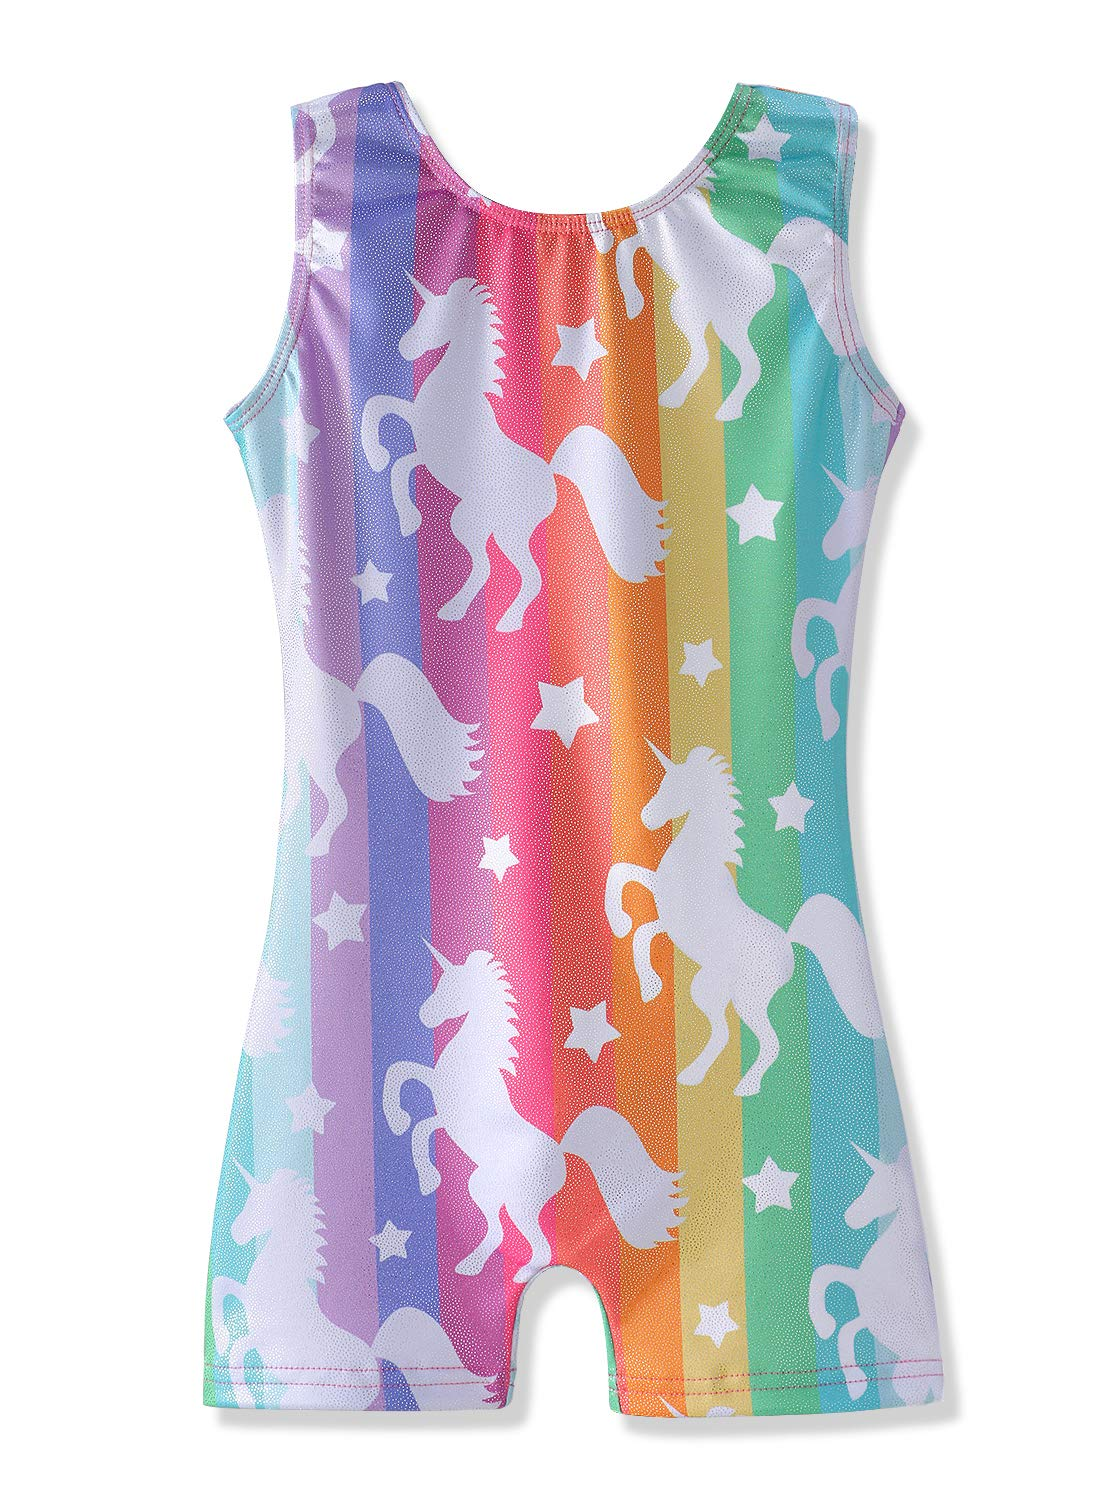 HOZIY Gymnastics Leotards for Girls with Shorts Size 6-7 Years Old Sparkly Dancewear by HOZIY